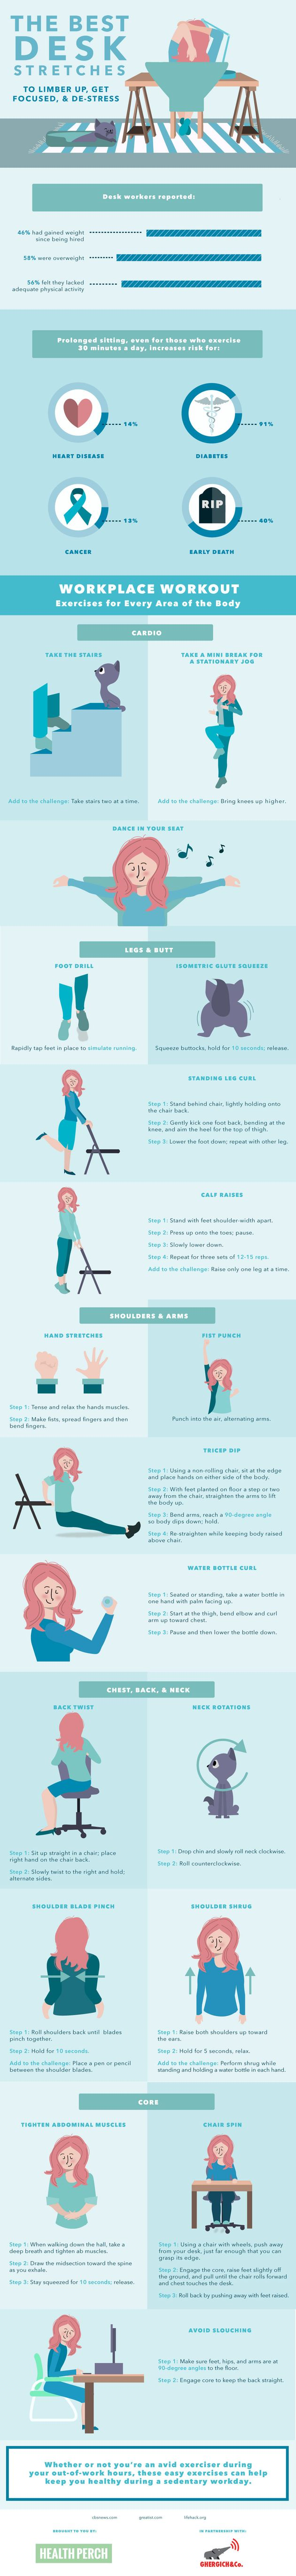 Try These Desk Stretches And Exercises To Relieve The Pains Of Your Day